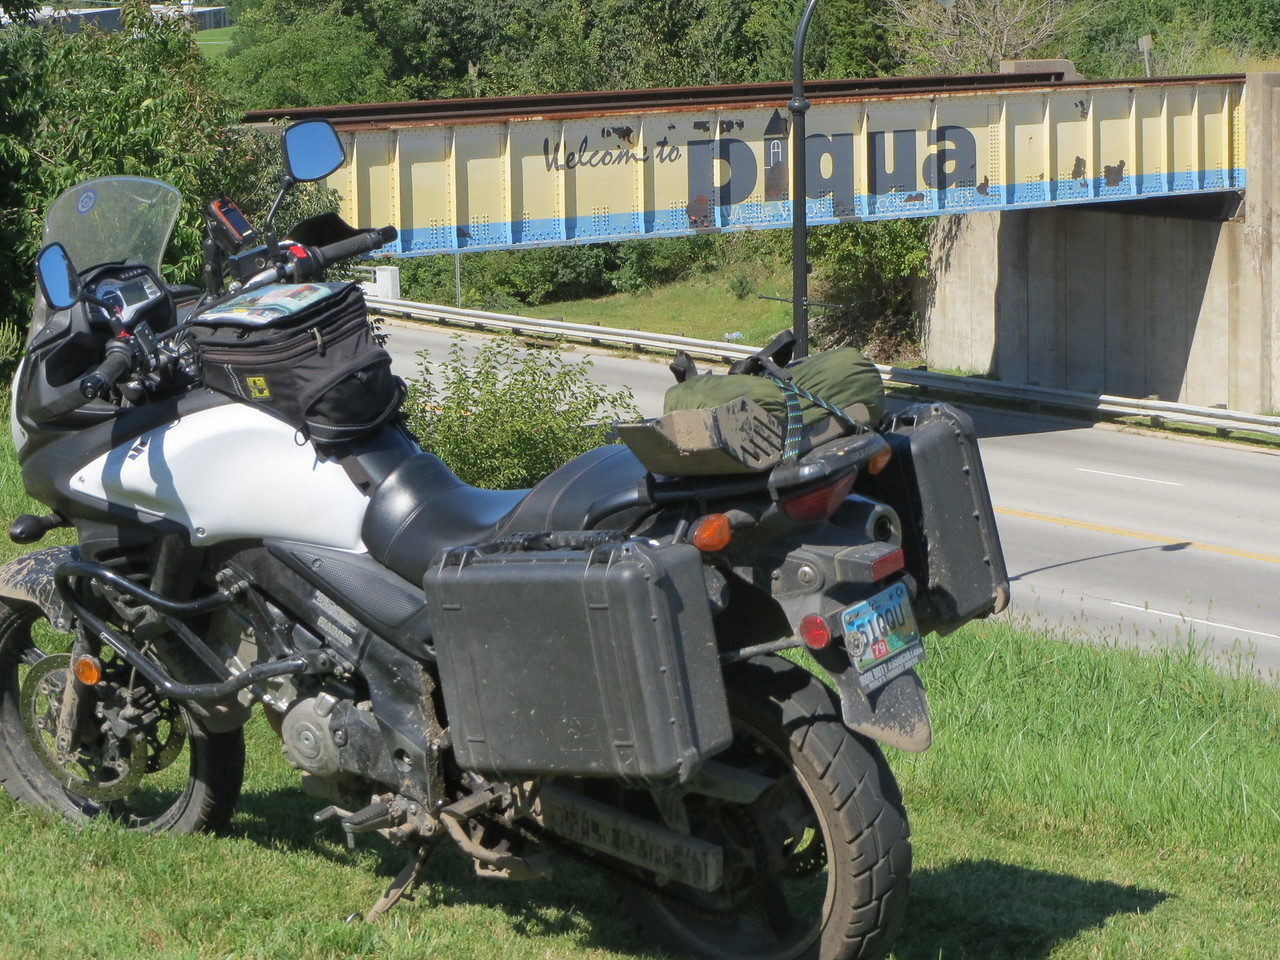 """Day 7 (391 miles): Short explanation of a """"no photo"""" period.  We rode I-70 east for like a gazillion miles (nothing worth taking a photo of), and then we got on US 36 again in northeast Kansas, rode it through MO and into IL, then got onto I-72 and later I-74.   Again, nothing photogenic, and now it was getting dark.<br /> <br /> Around the IN border, at around 1:30 am, and after almost 1000 miles, I was too worn out to go on.  I pulled into a school parking lot and went to sleep.  Matt continued on without me, to his parent's house near Indy.  <br /> <br /> I awoke at 7:15 to parents literally driving around me to drop their kids off - unbelievably, no one woke me, or called the cops.  I hastily got dressed (yeah, I was wearing nothing but my shorts in my sleeping bag!) and GTFO of there.  <br /> <br /> Anyway, long story short, I had a relaxing morning ride to Richmond IN, where I ate breakfast, and then got back on US 36 to ride the entire Ohio section home... I took this shot in Piqua, OH."""